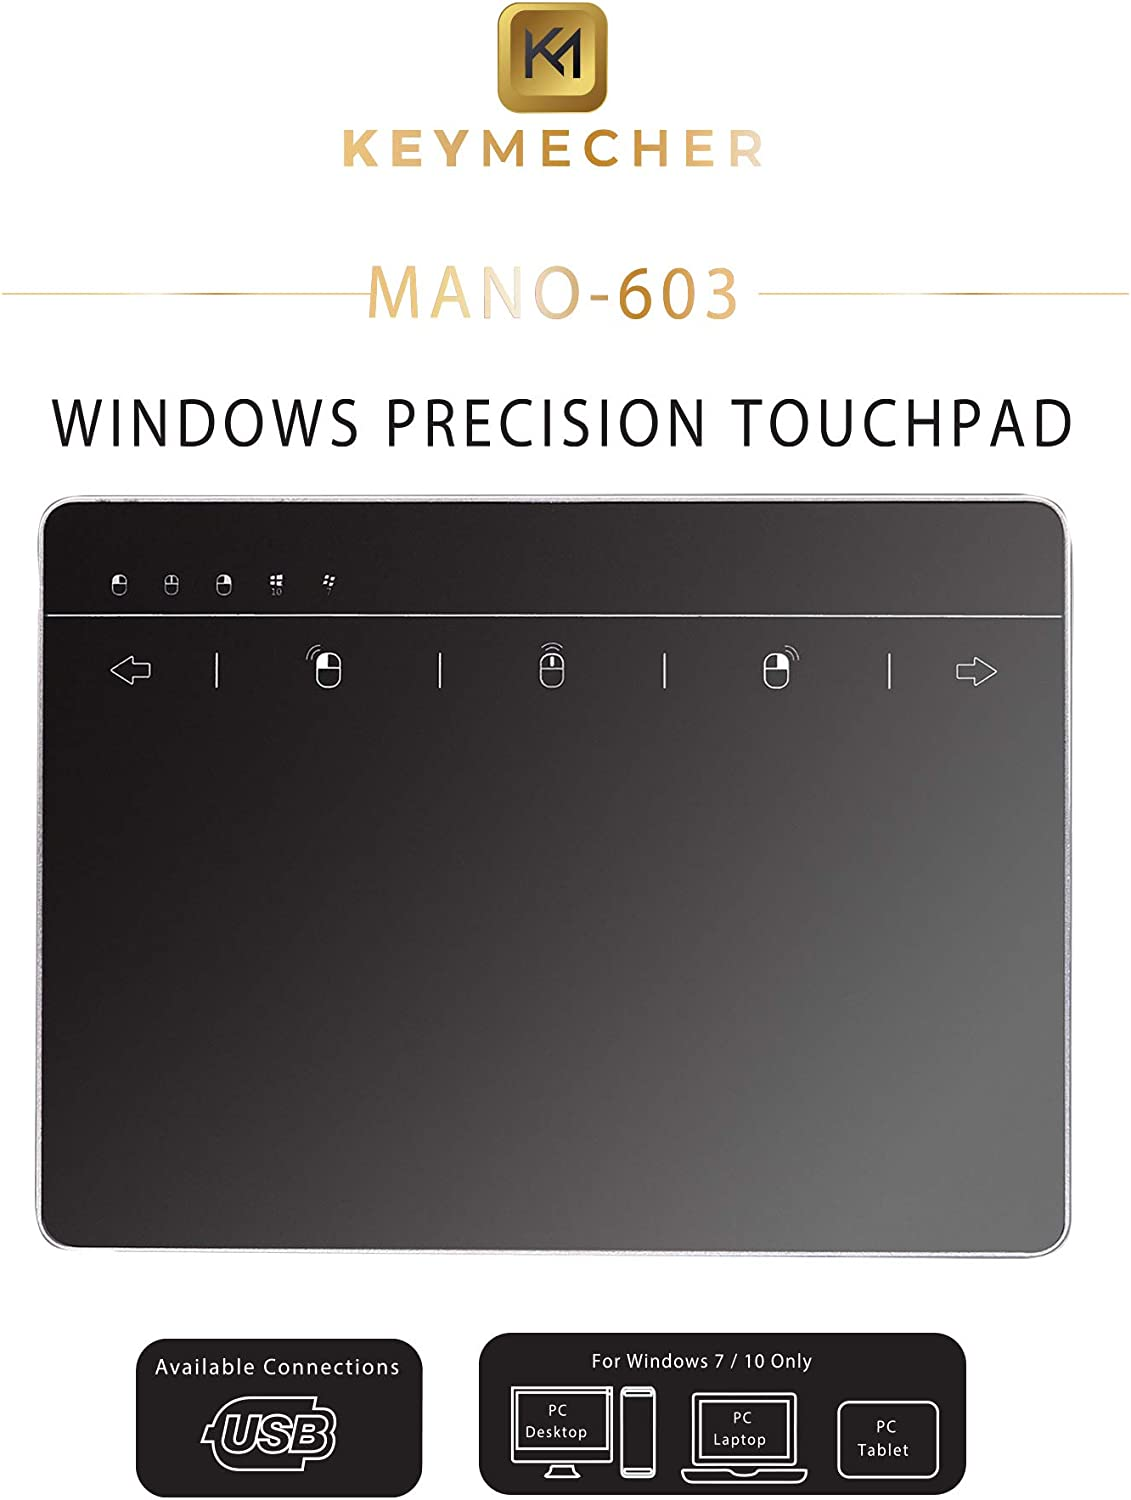 Keymecher Mano Multi-Gesture Wired Trackpad for Windows 7 and Windows 10, USB Slim Touchpad Mouse for Computer, Notebook, PC, and Laptop (Aluminum Black, Support Windows Precision Touchpad)